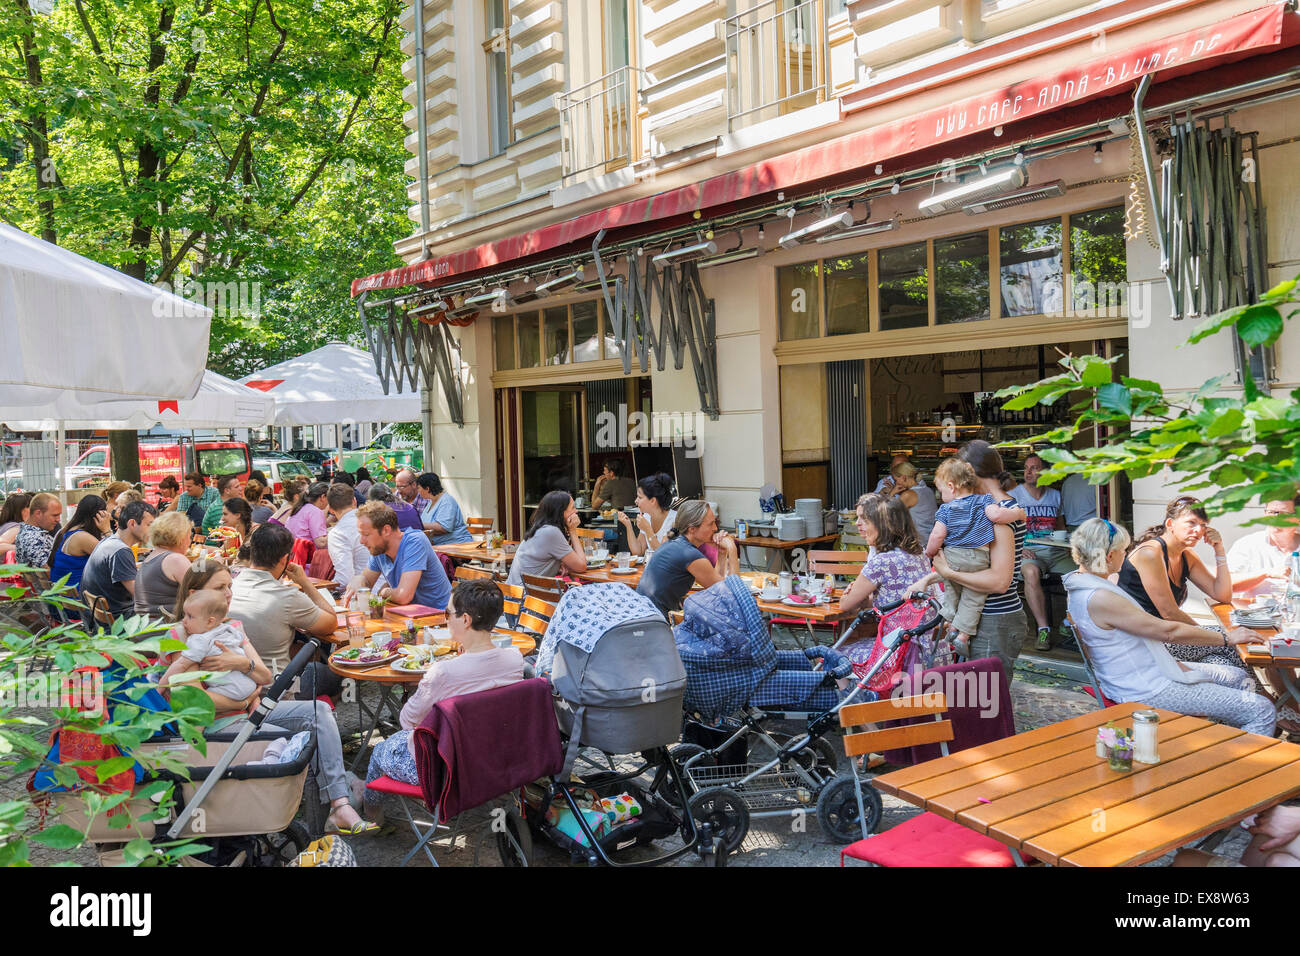 Busy Anna Blume cafe in summer in Prenzlauer Berg district of Berlin Germany - Stock Image